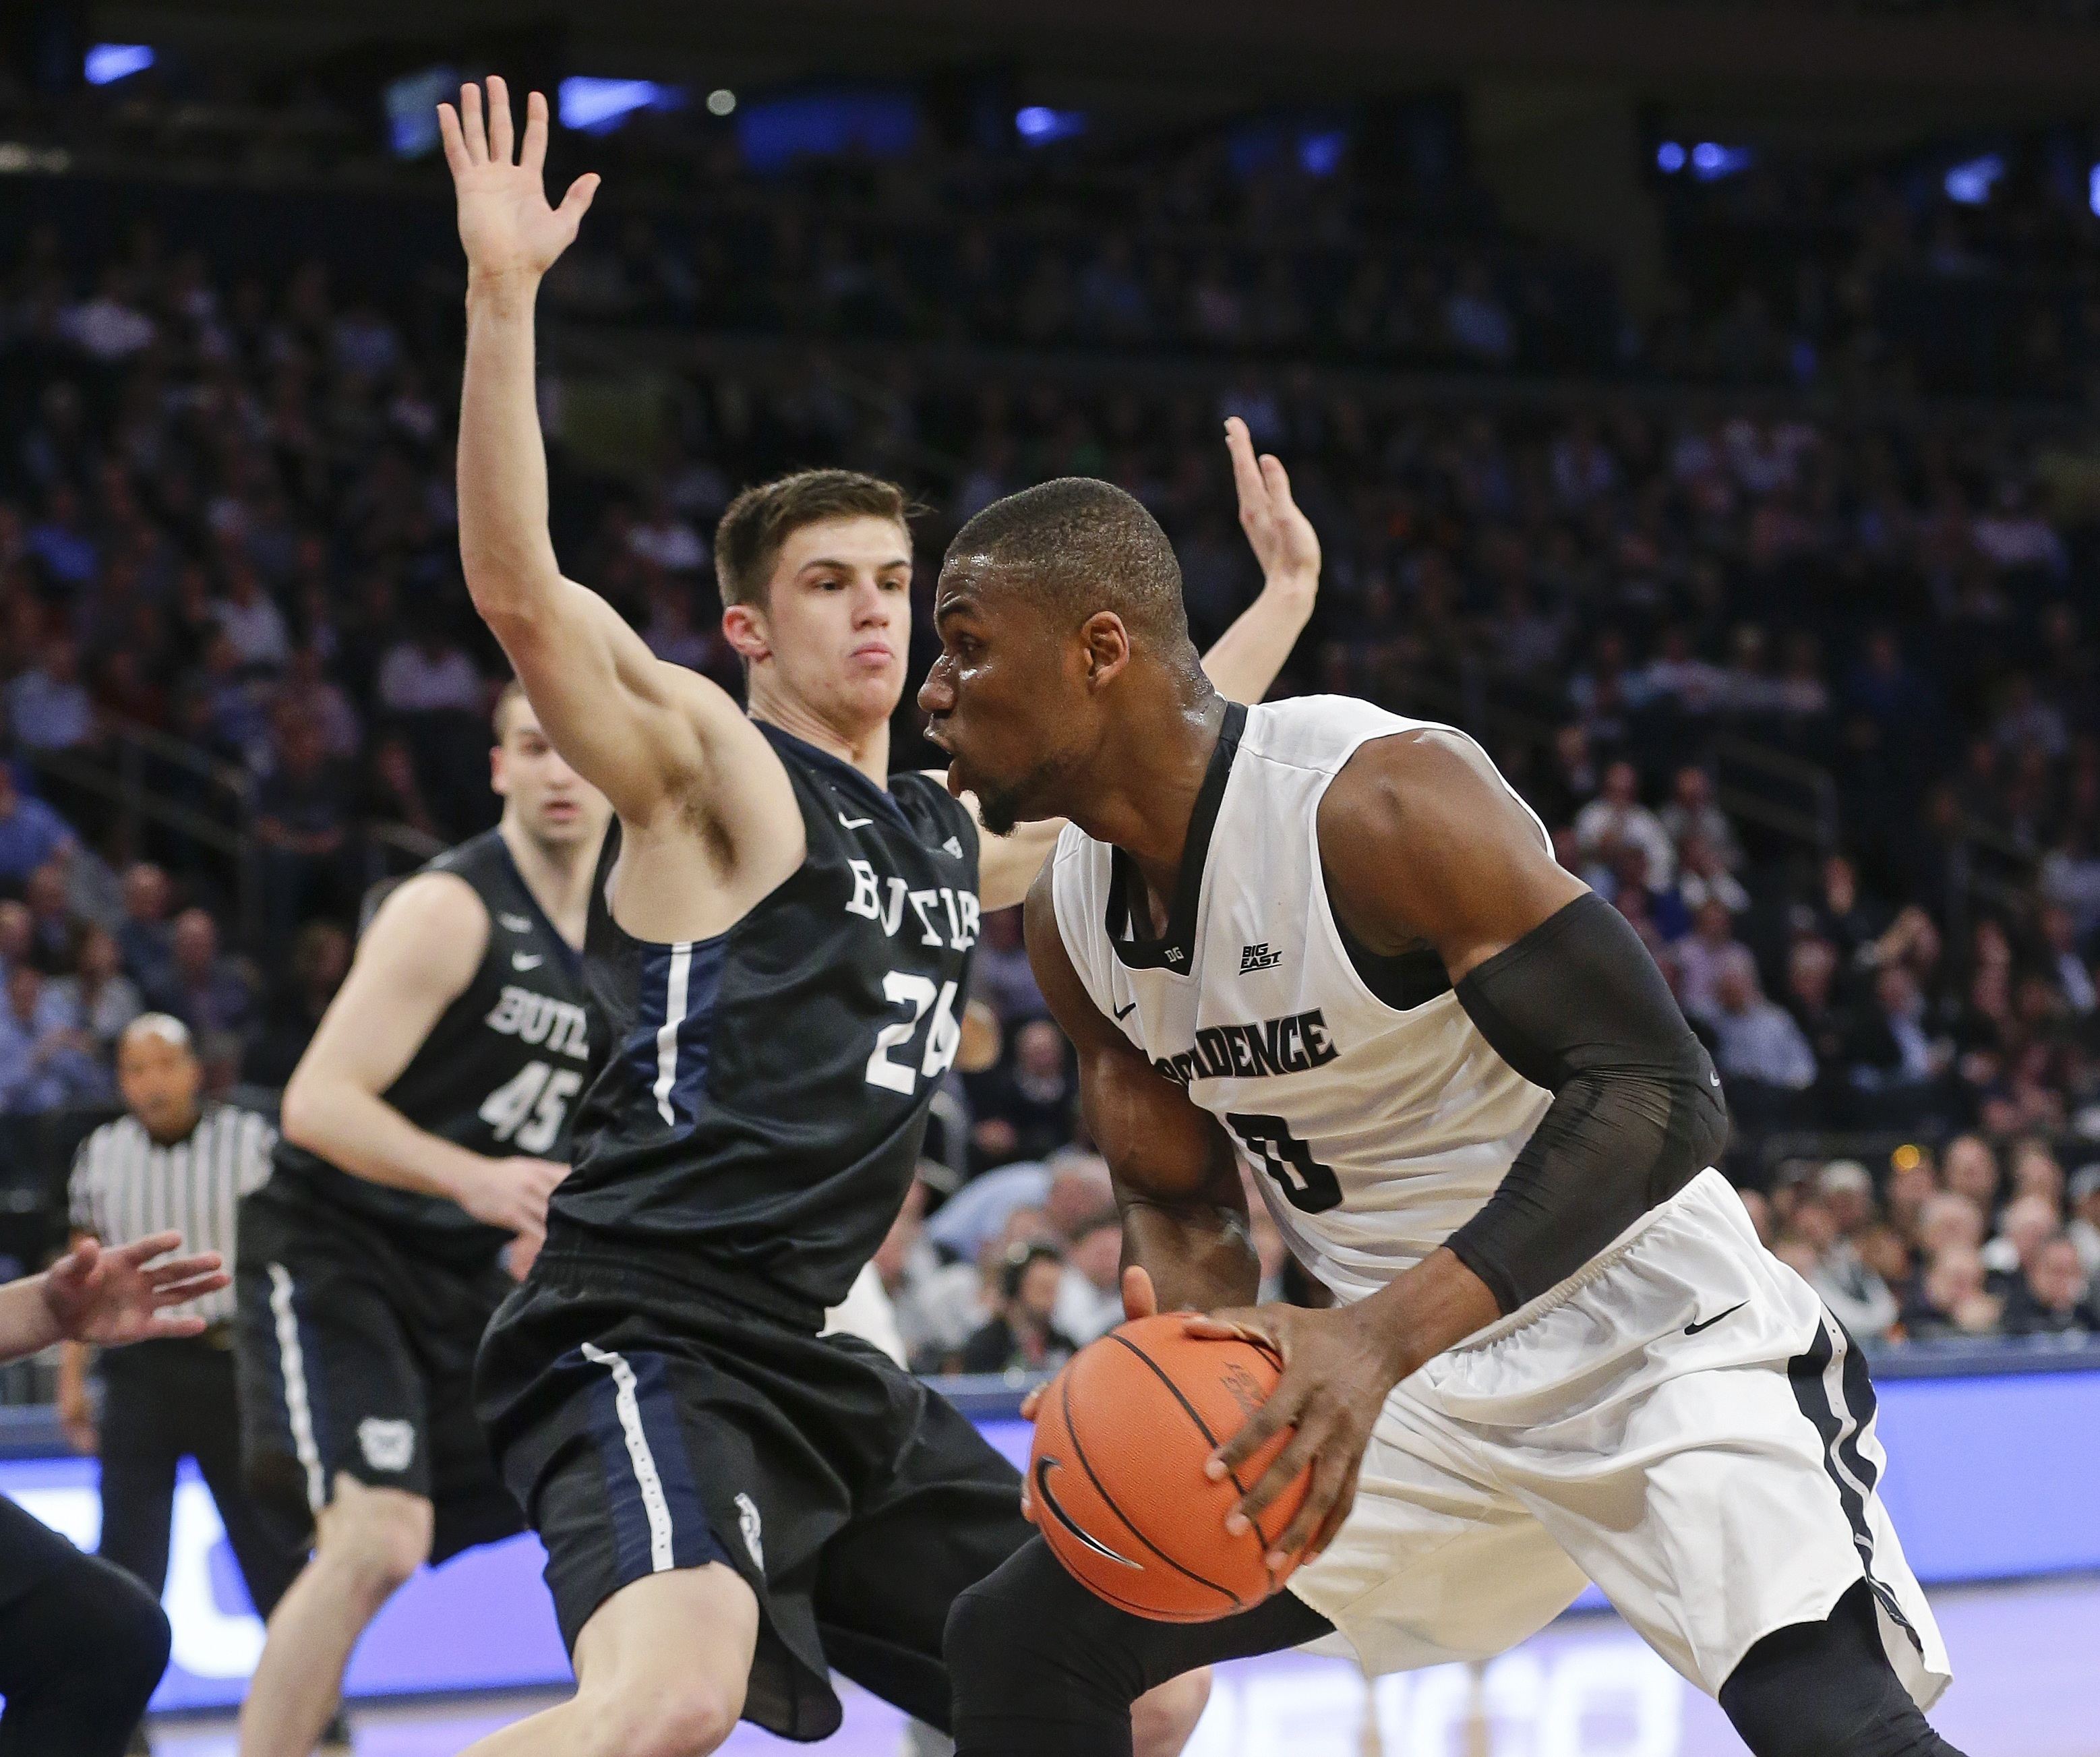 Providence's Ben Bentil (0) drives past Butler's Kellen Dunham (24) during the first half of an NCAA college basketball game during the Big East men's tournament Thursday, March 10, 2016, in New York. (AP Photo/Frank Franklin II)